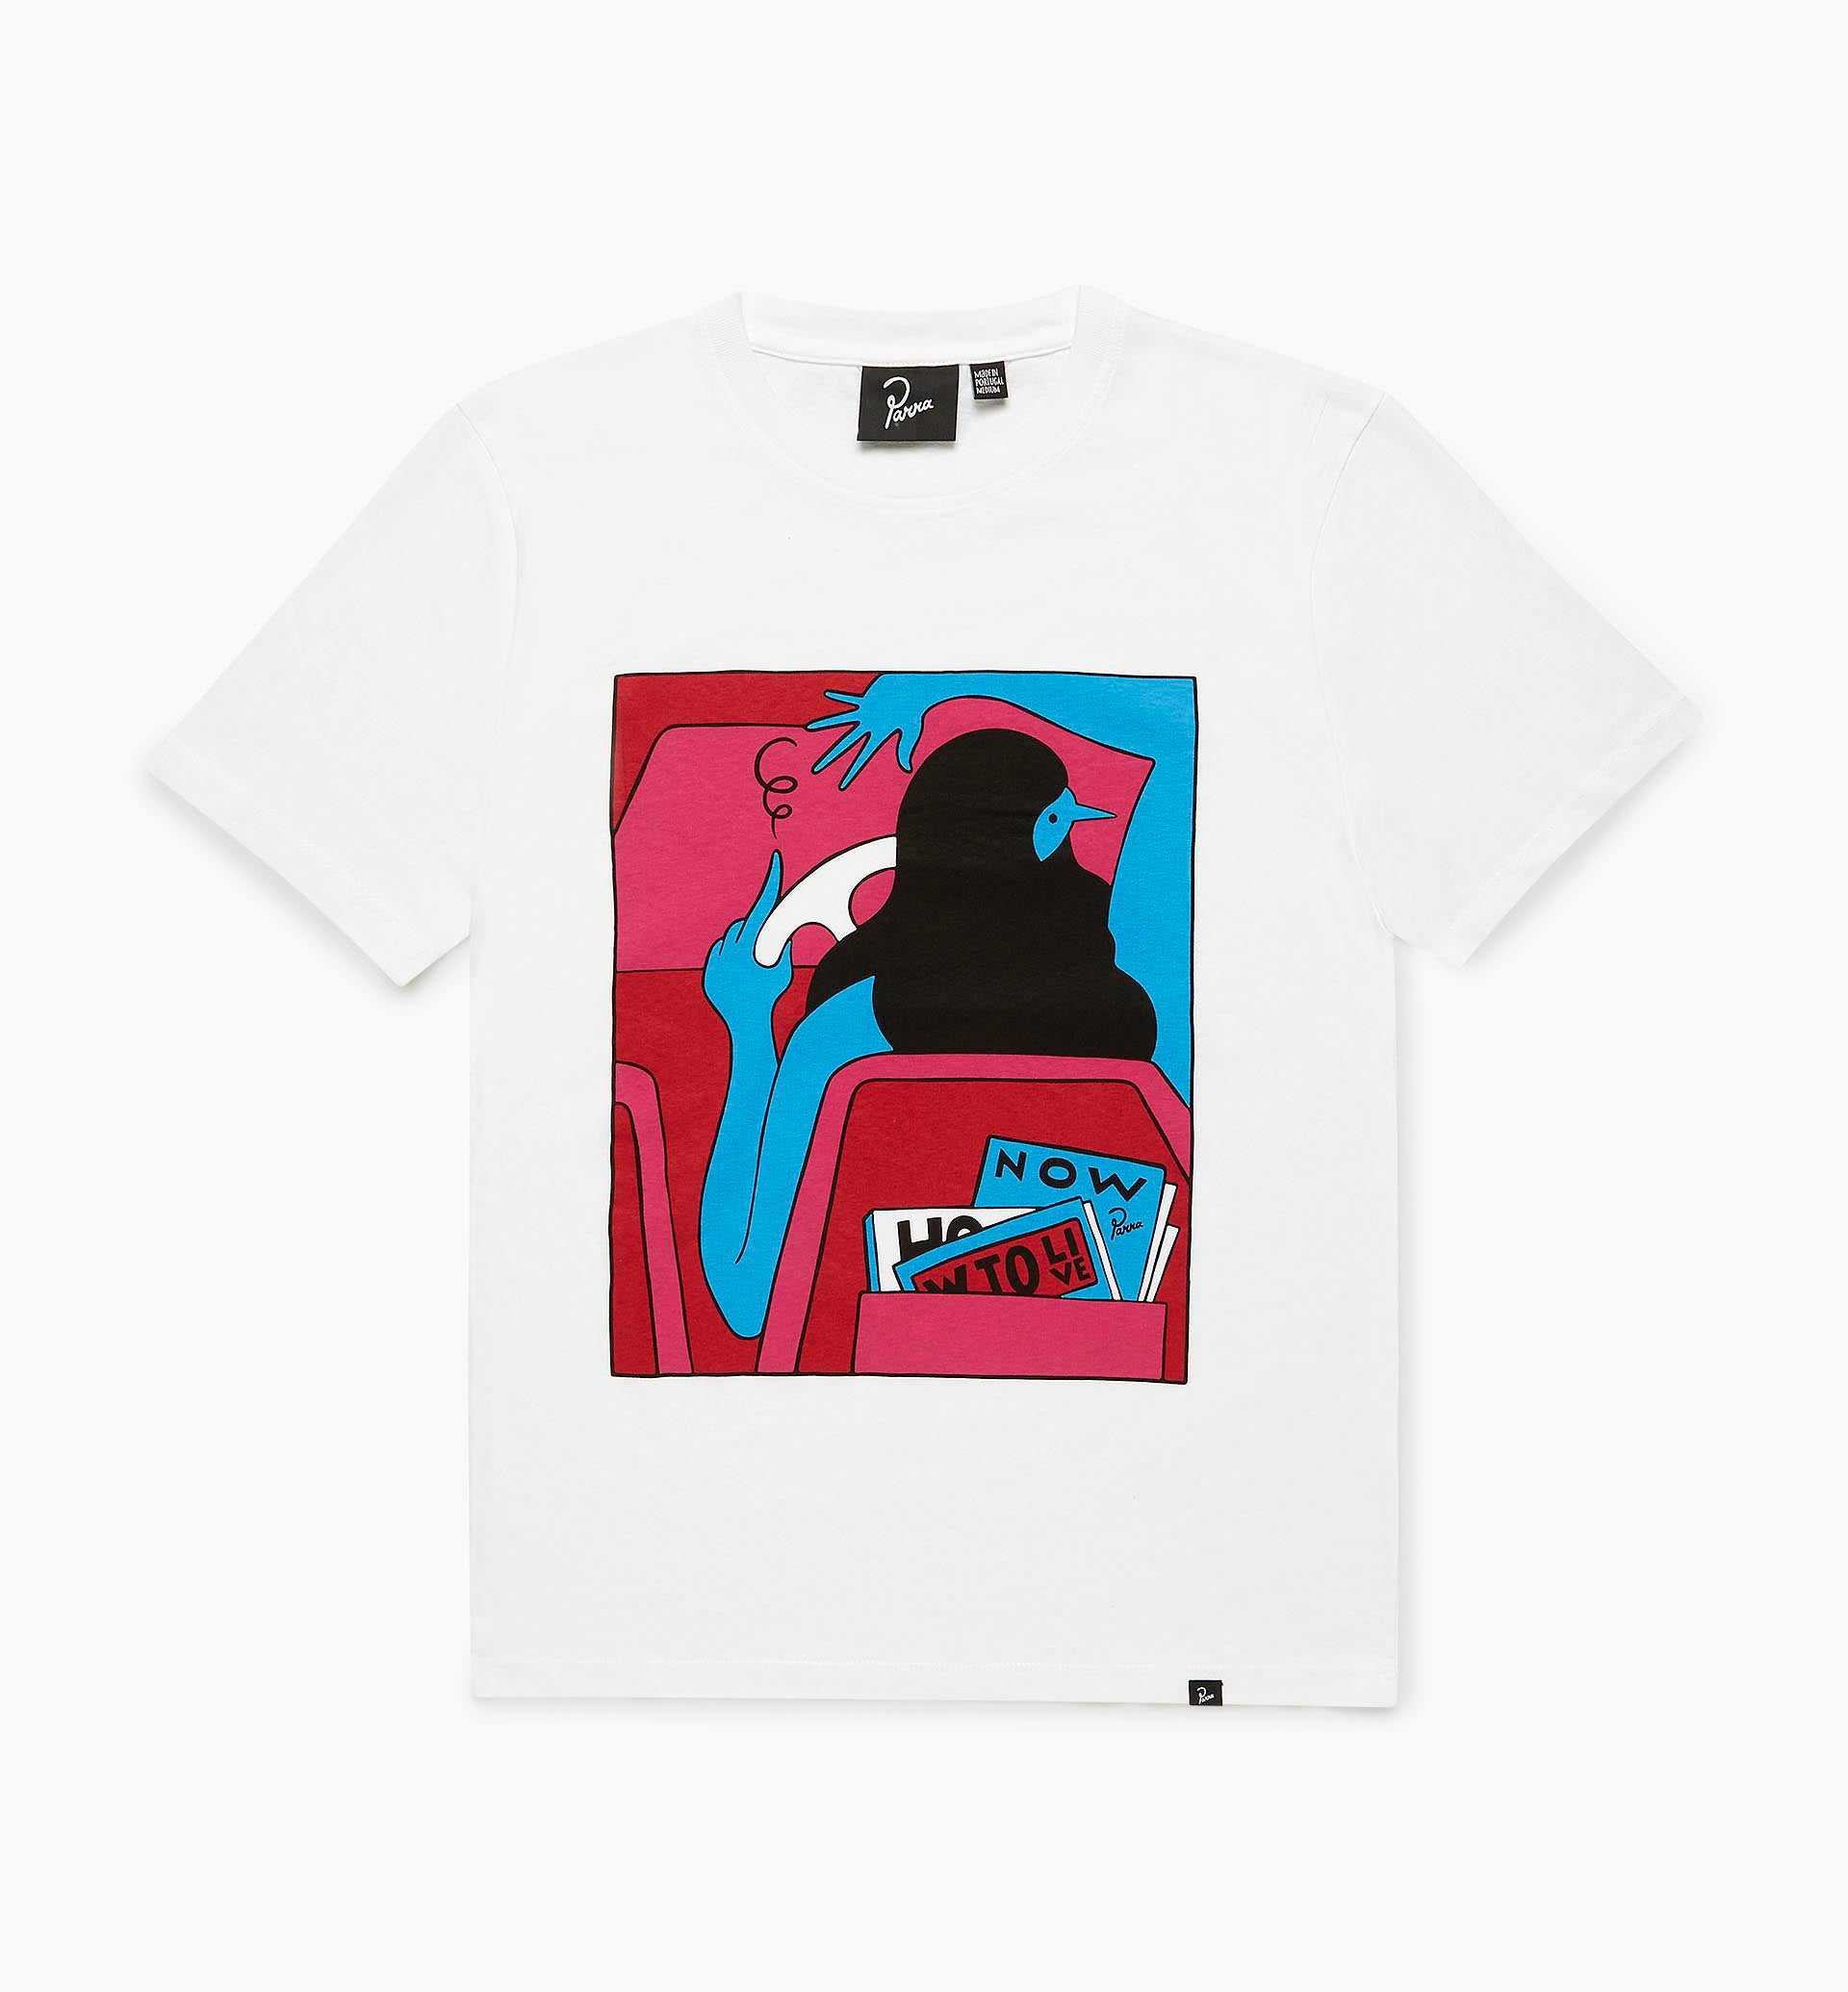 Parra - how to live now t-shirt